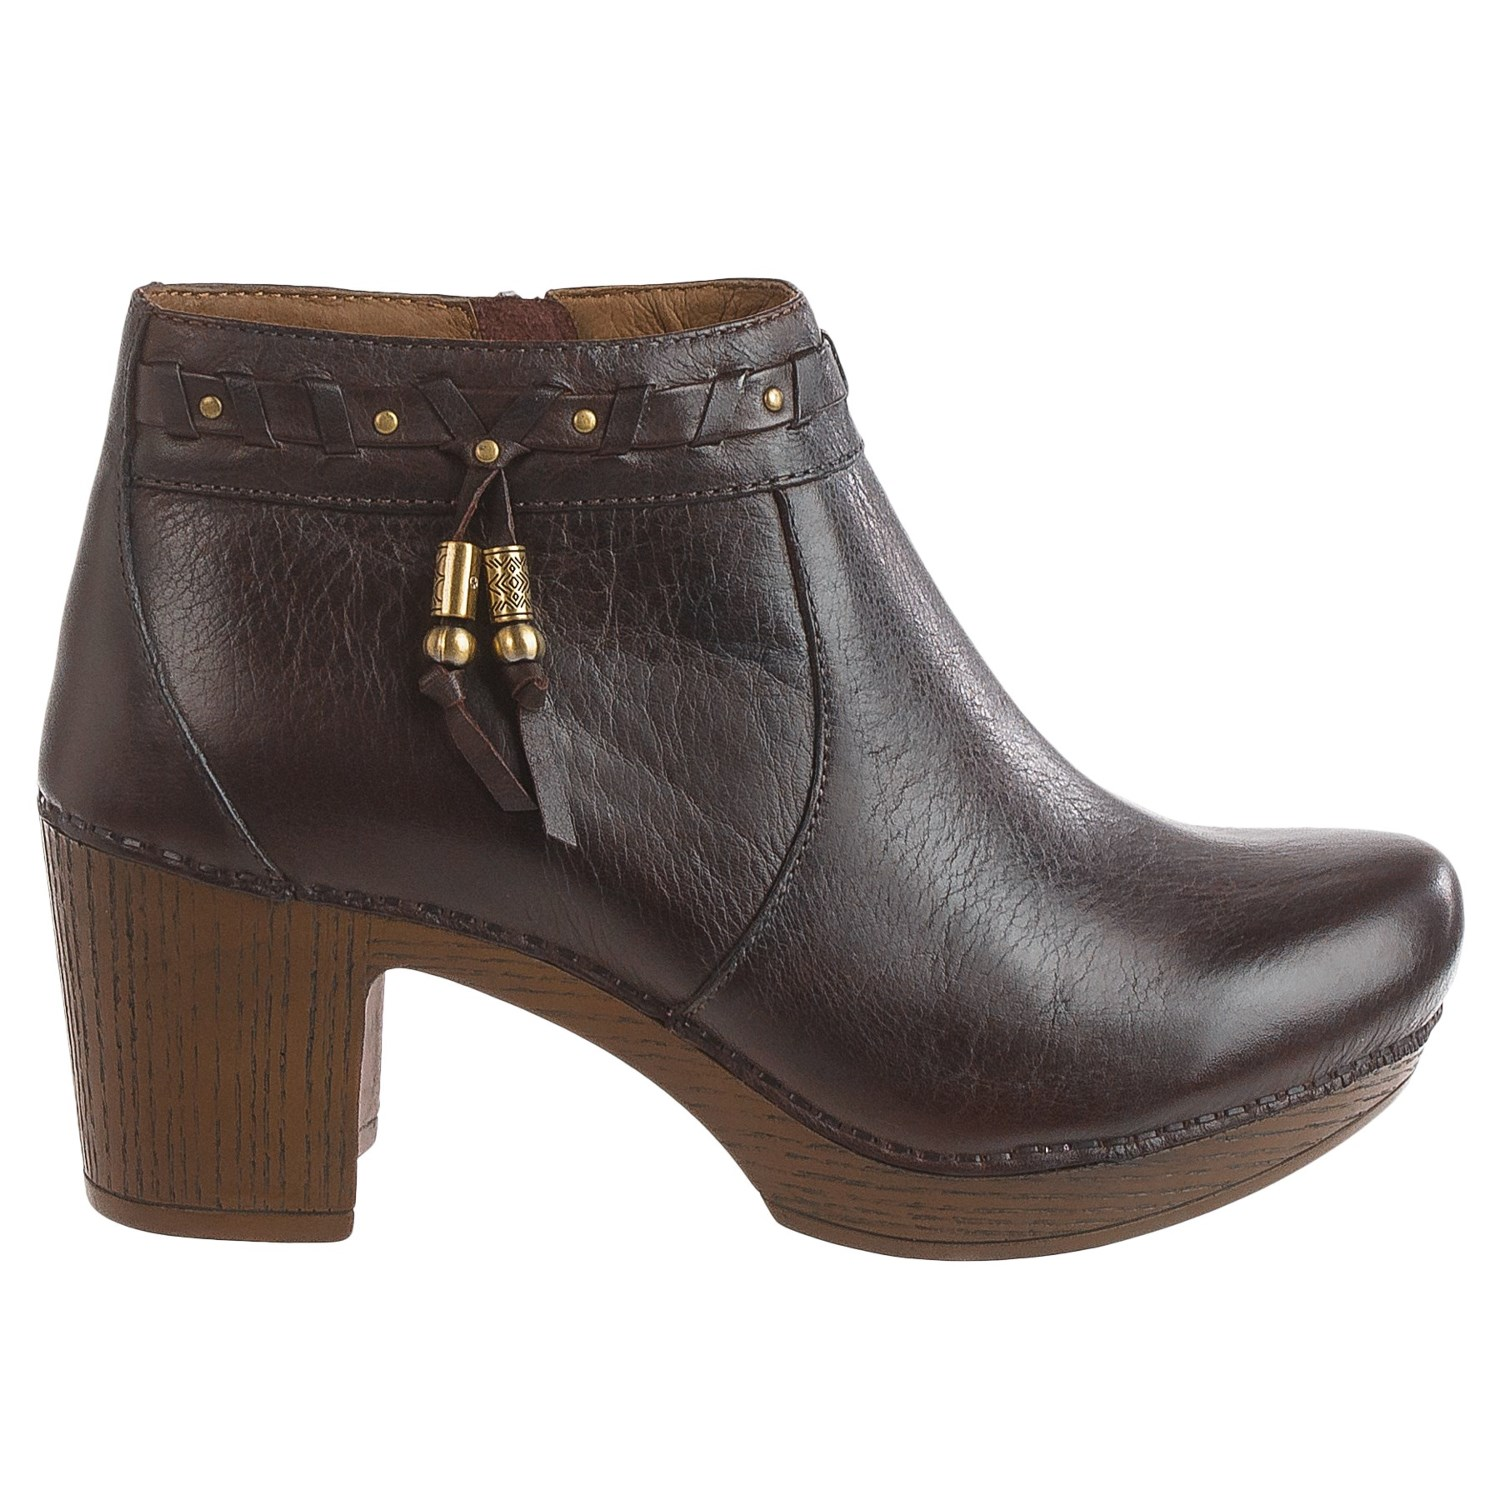 Dansko Dabney Ankle Boots - Leather (For Women) - Dansko Dabney Ankle Boots (For Women) - Save 31%